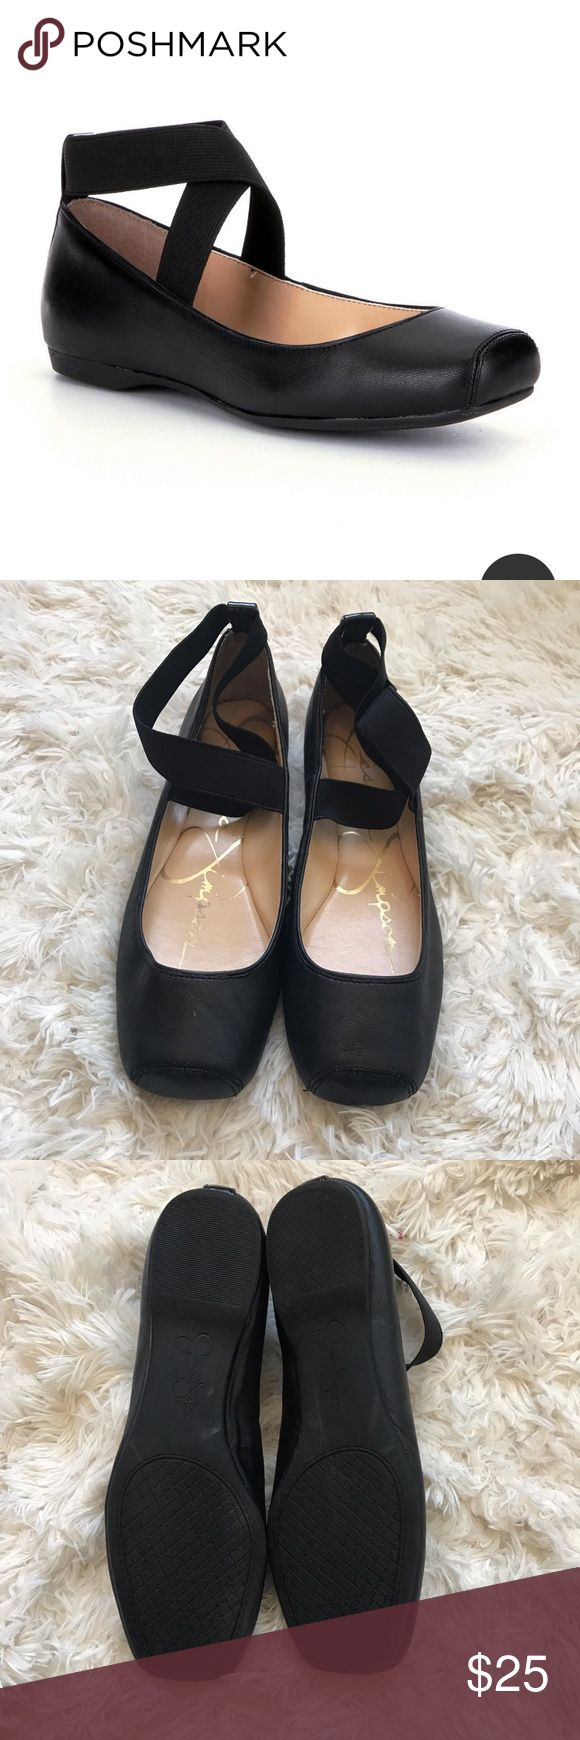 Jessica Simpson• squared ballet flats•size 7 Squared toe ballet flats .  Leather upper . Criss cross elastic. Rubber sole. Ok good condition Jessica Simpson Shoes Flats & Loafers